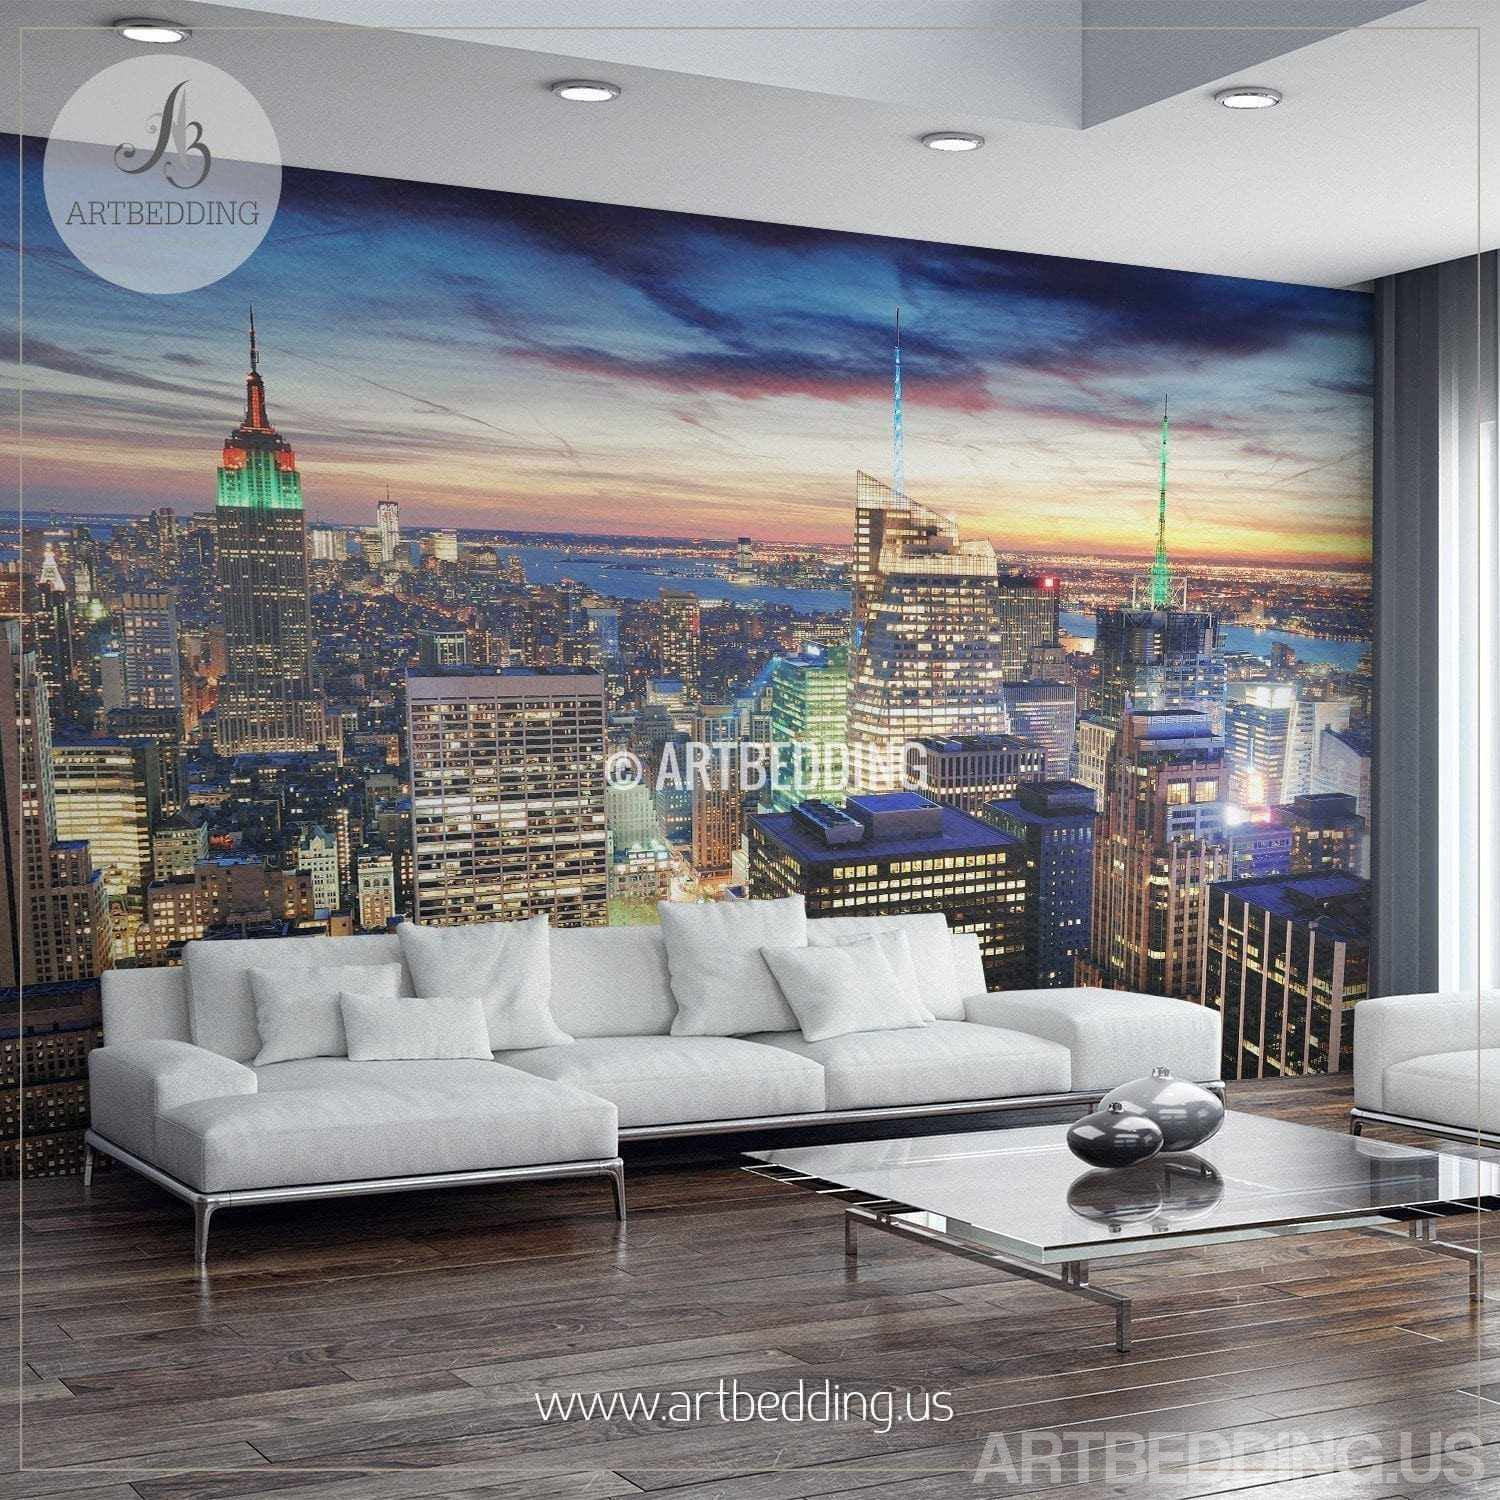 New York Cityscape Wall Mural New Yoork Sunset Photo Artbedding